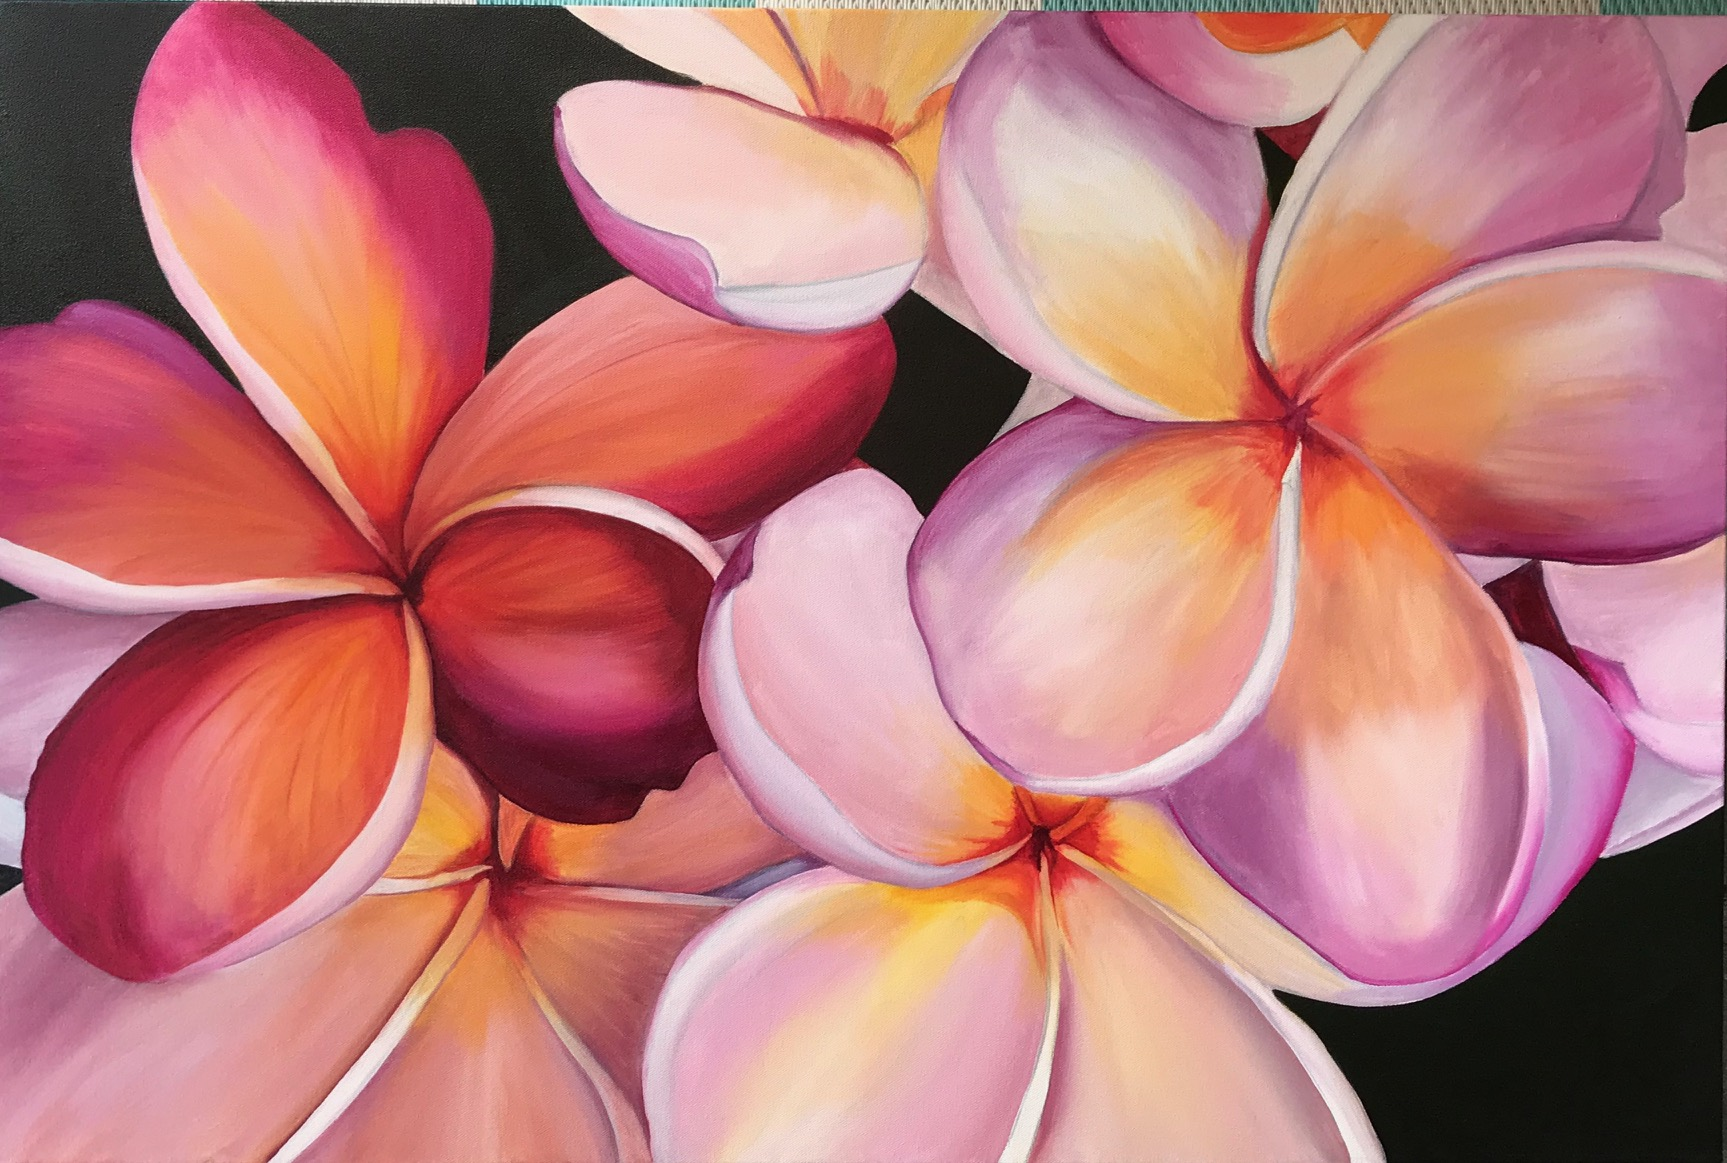 Tropical Blush 91cm (W) x 61cm (H) $700  Professional quality acrylic paint 100% cotton canvas. Varnished, sides painted, ready to hang, unframed. Commissions welcome.